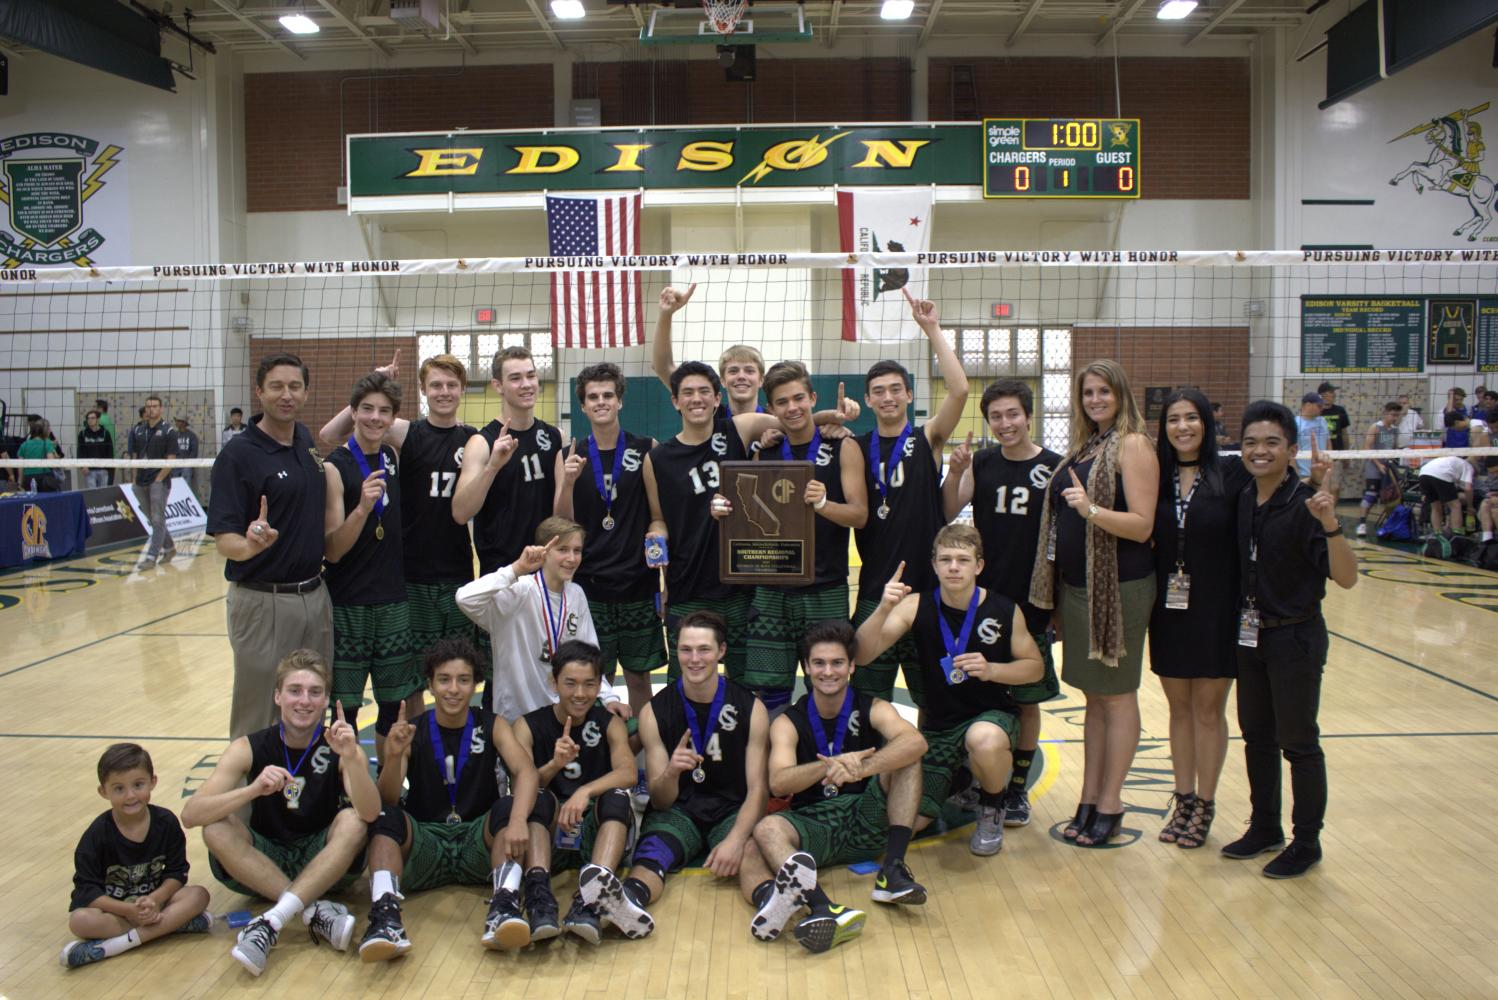 The Boys 2017 Varsity Volleyball team proudly displays their state championship trophy and medals